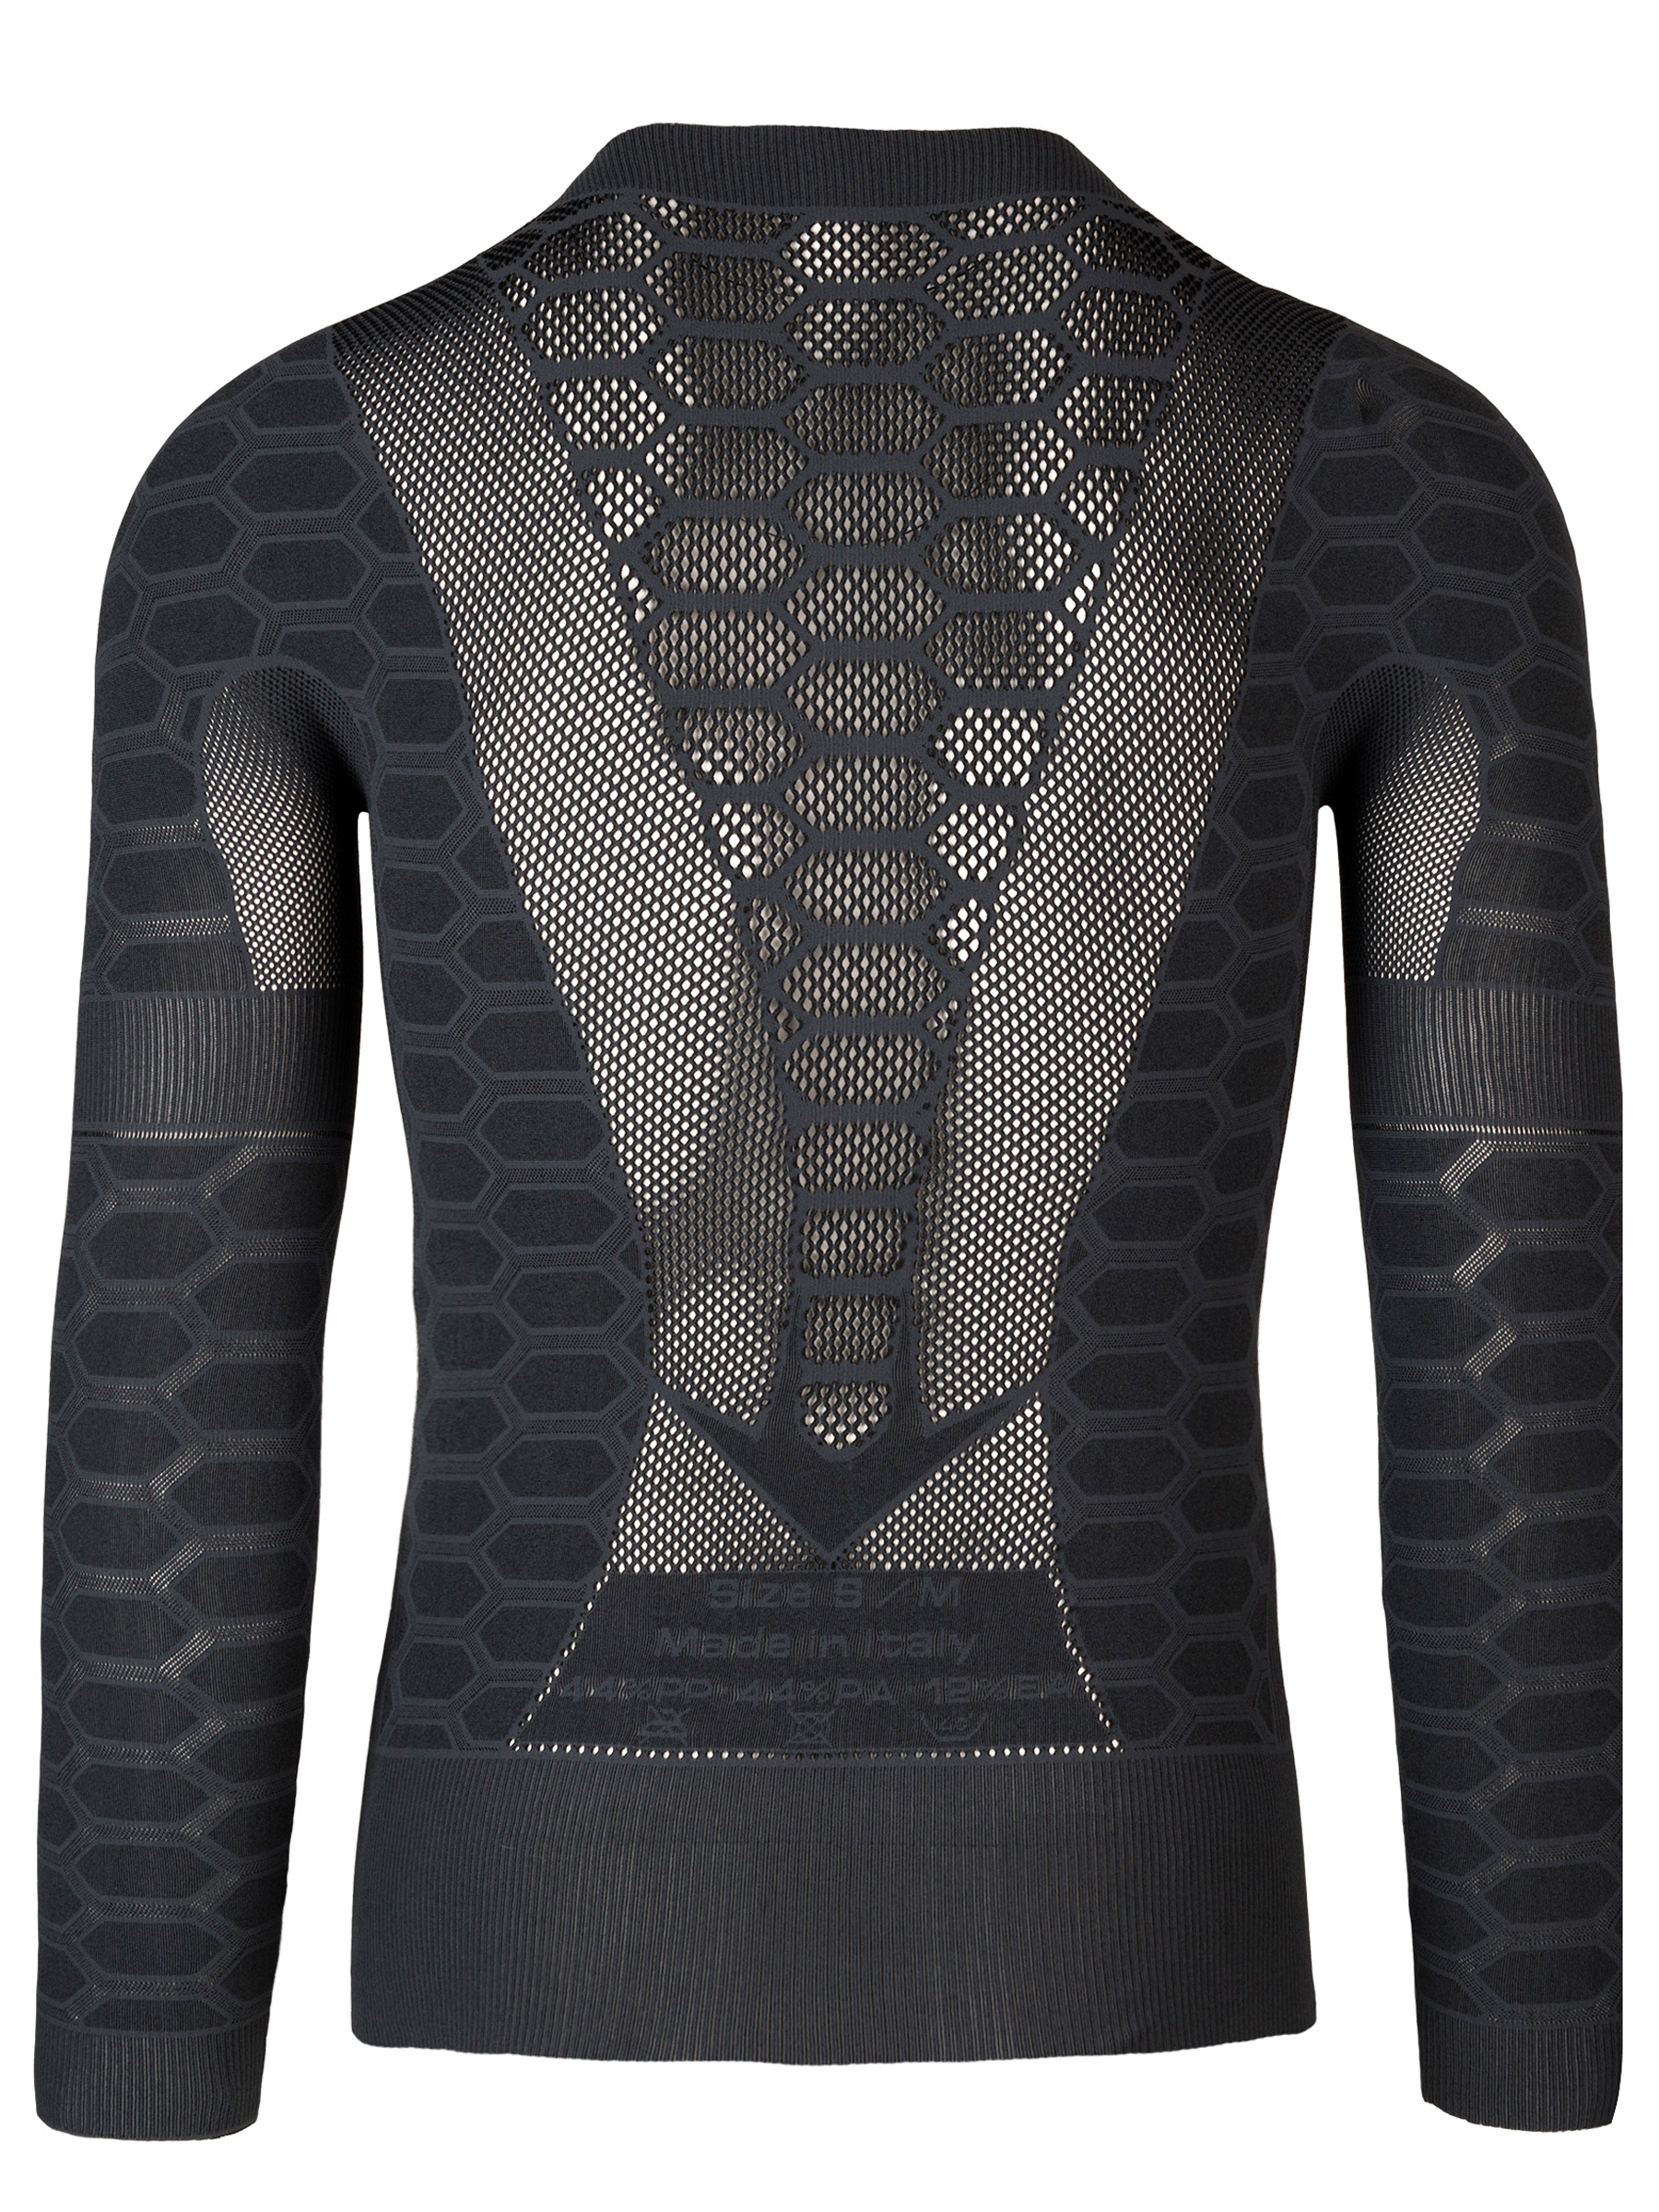 Base Layer 3 long sleeve Antracite